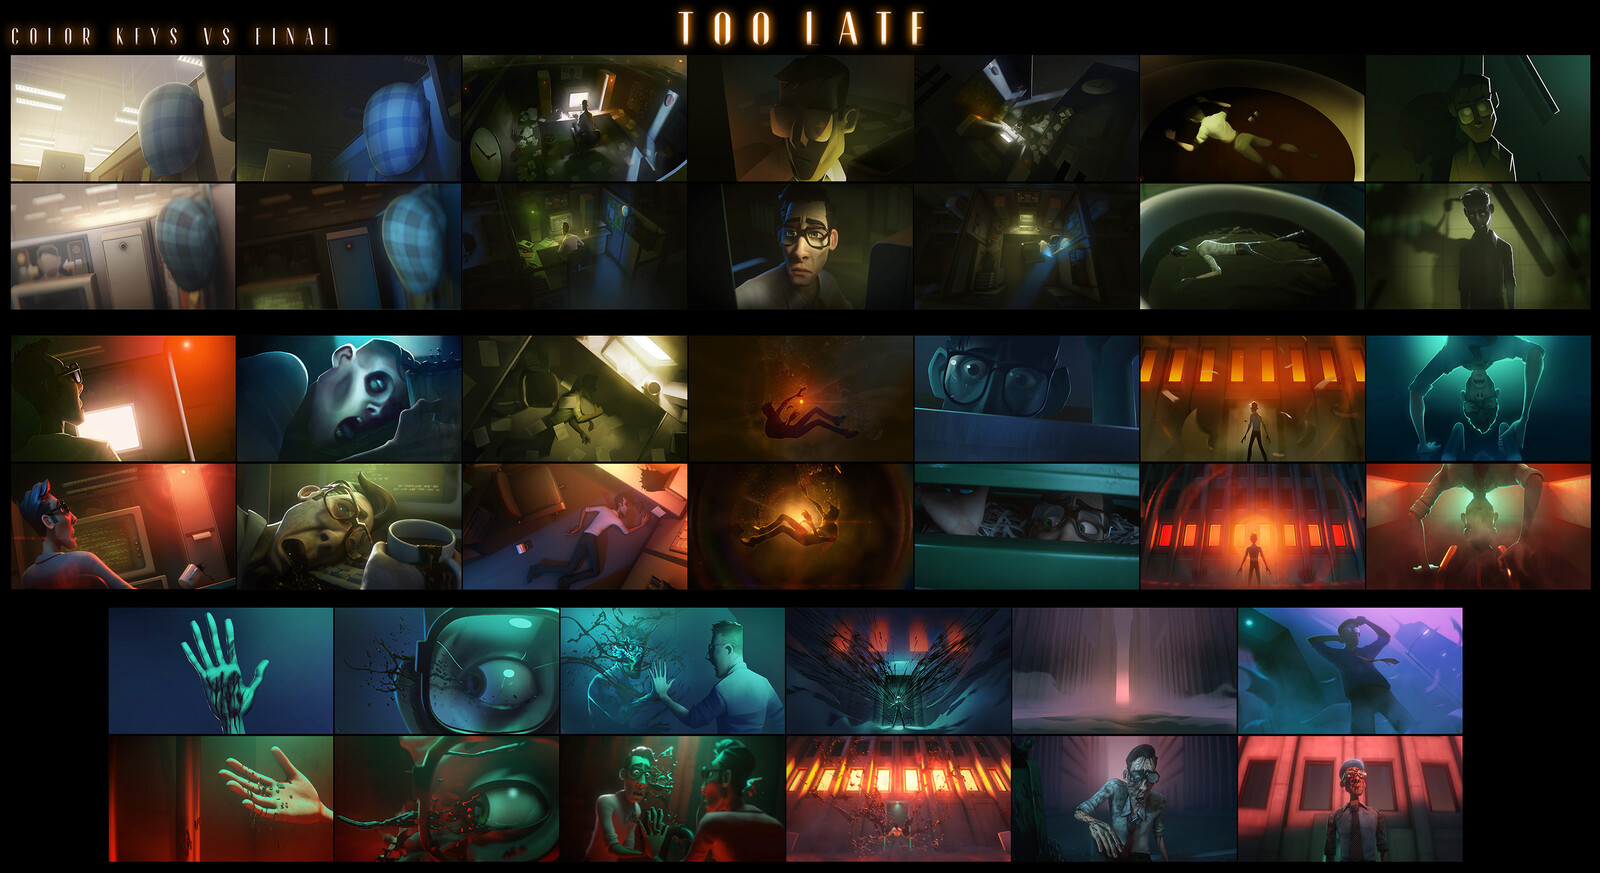 Comparison between some of the color keys next to their corresponding shots in the film.